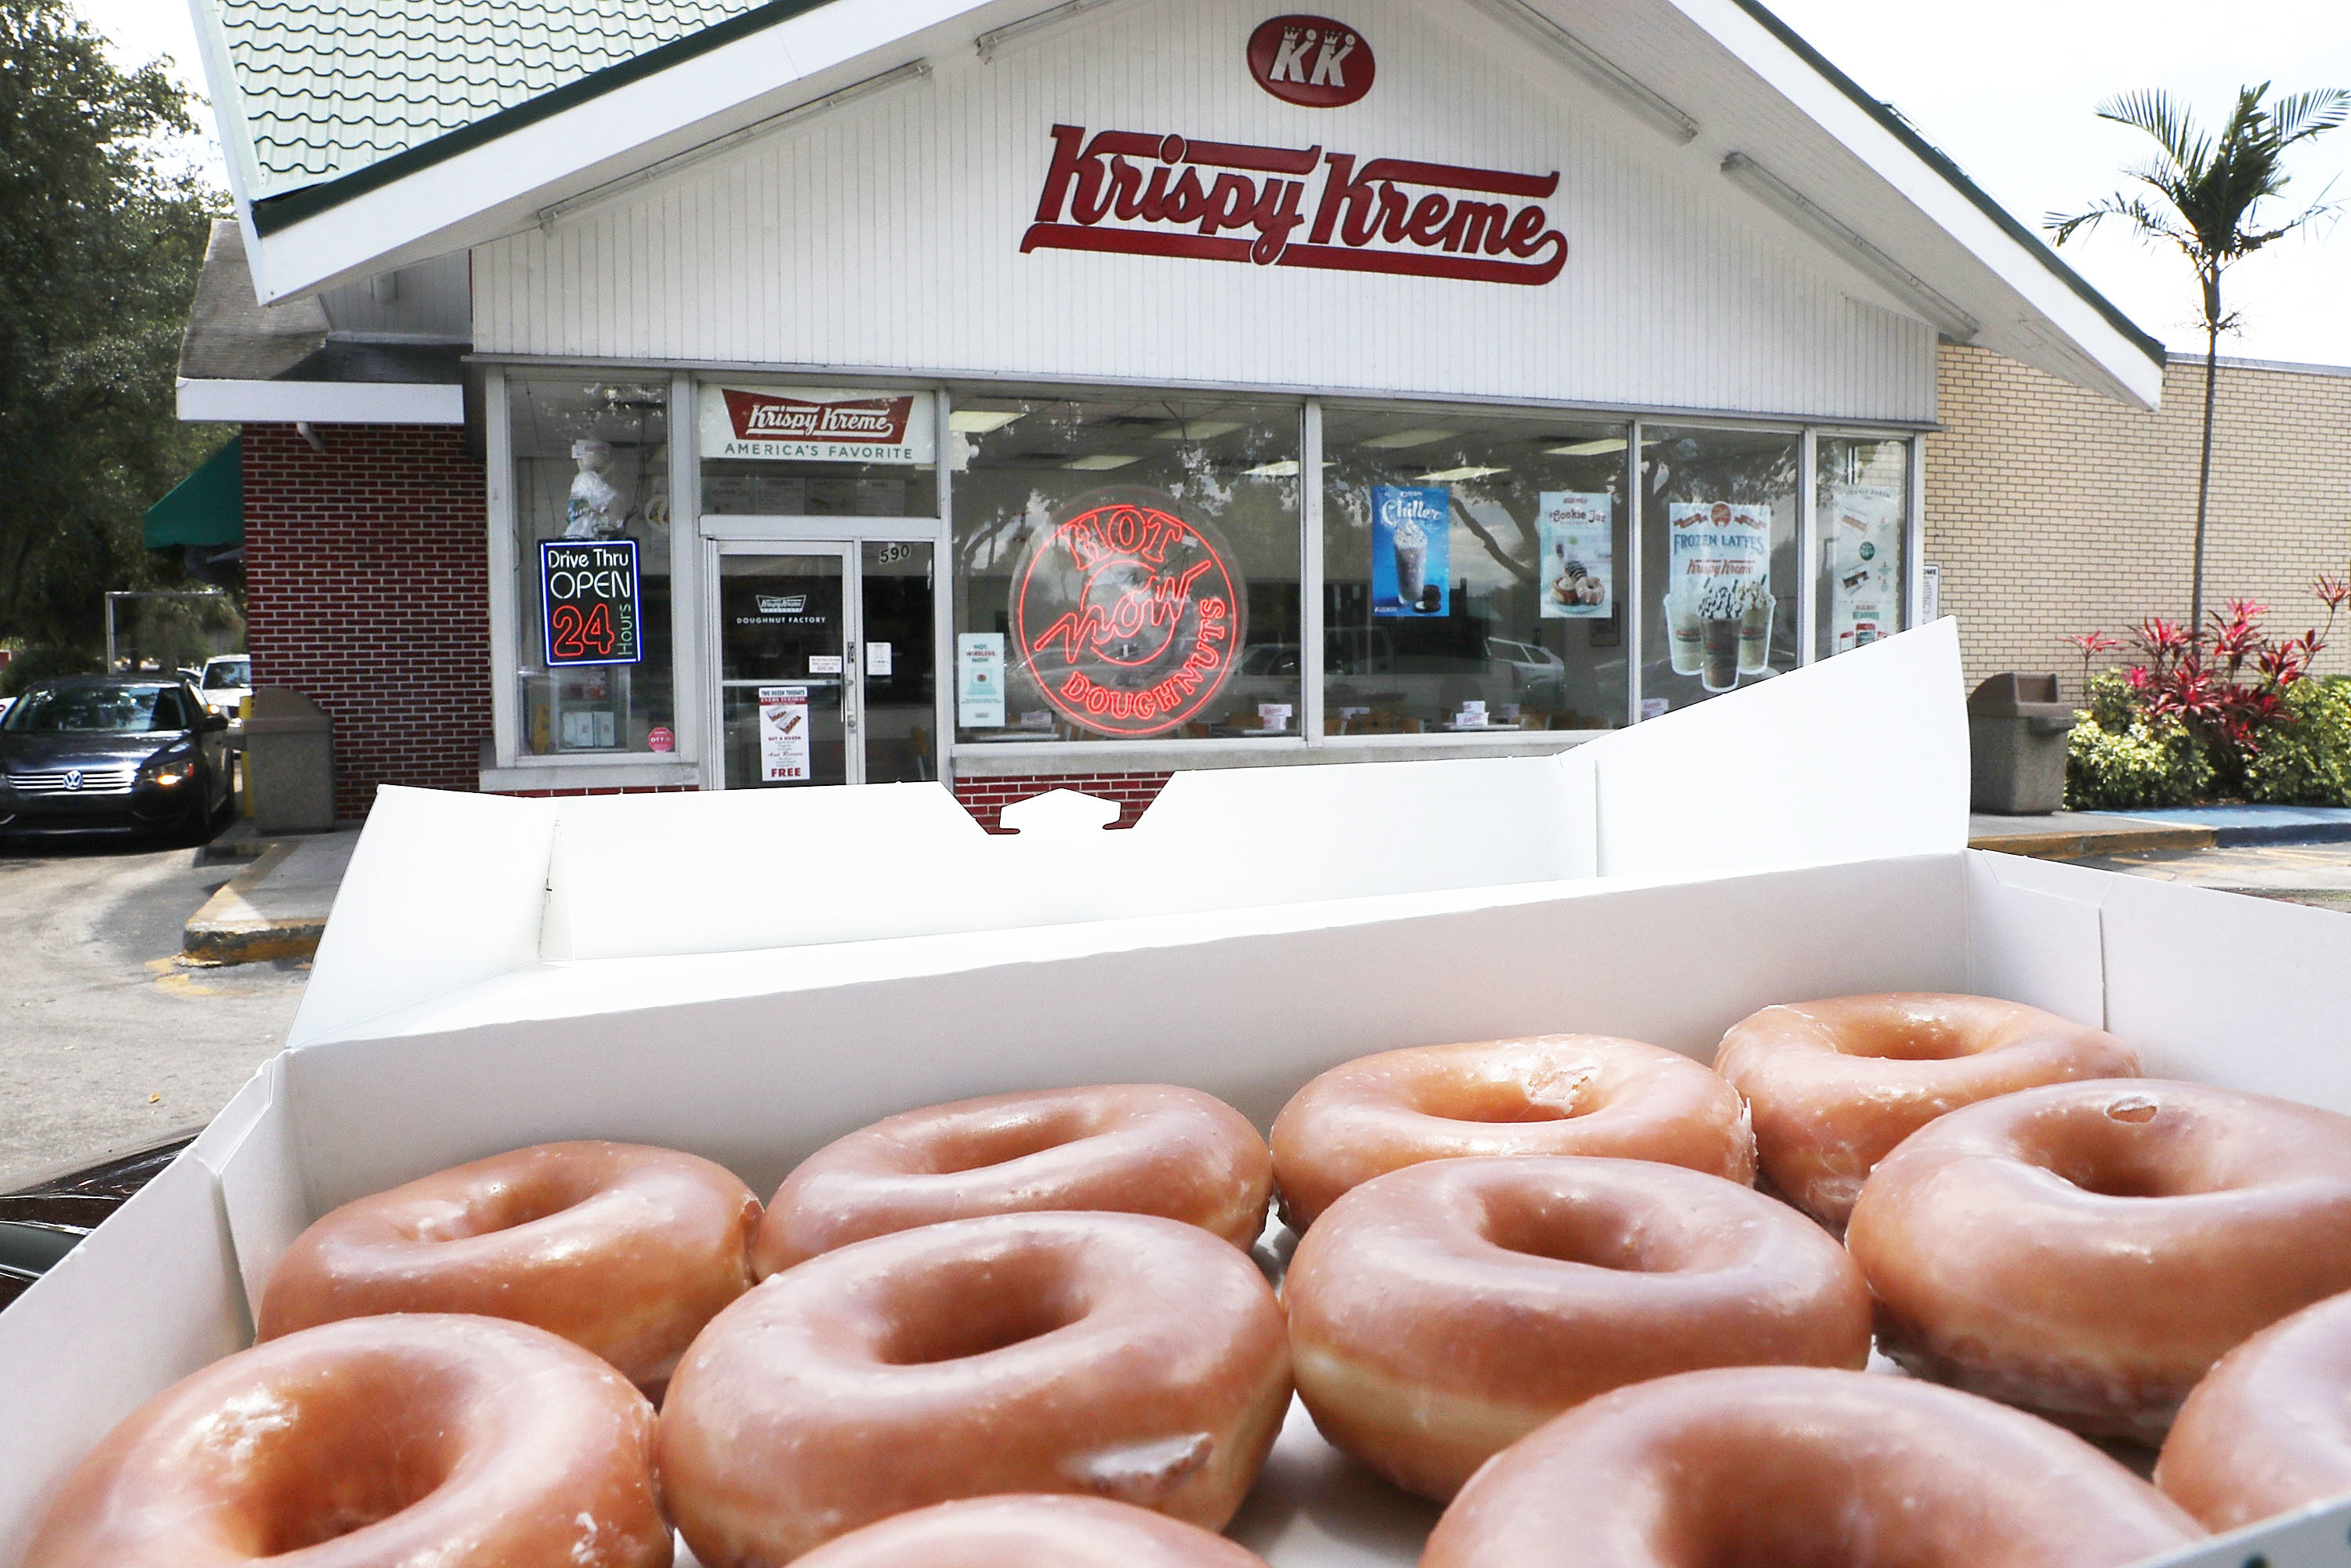 Here's How Much It Costs To Open a Krispy Kreme